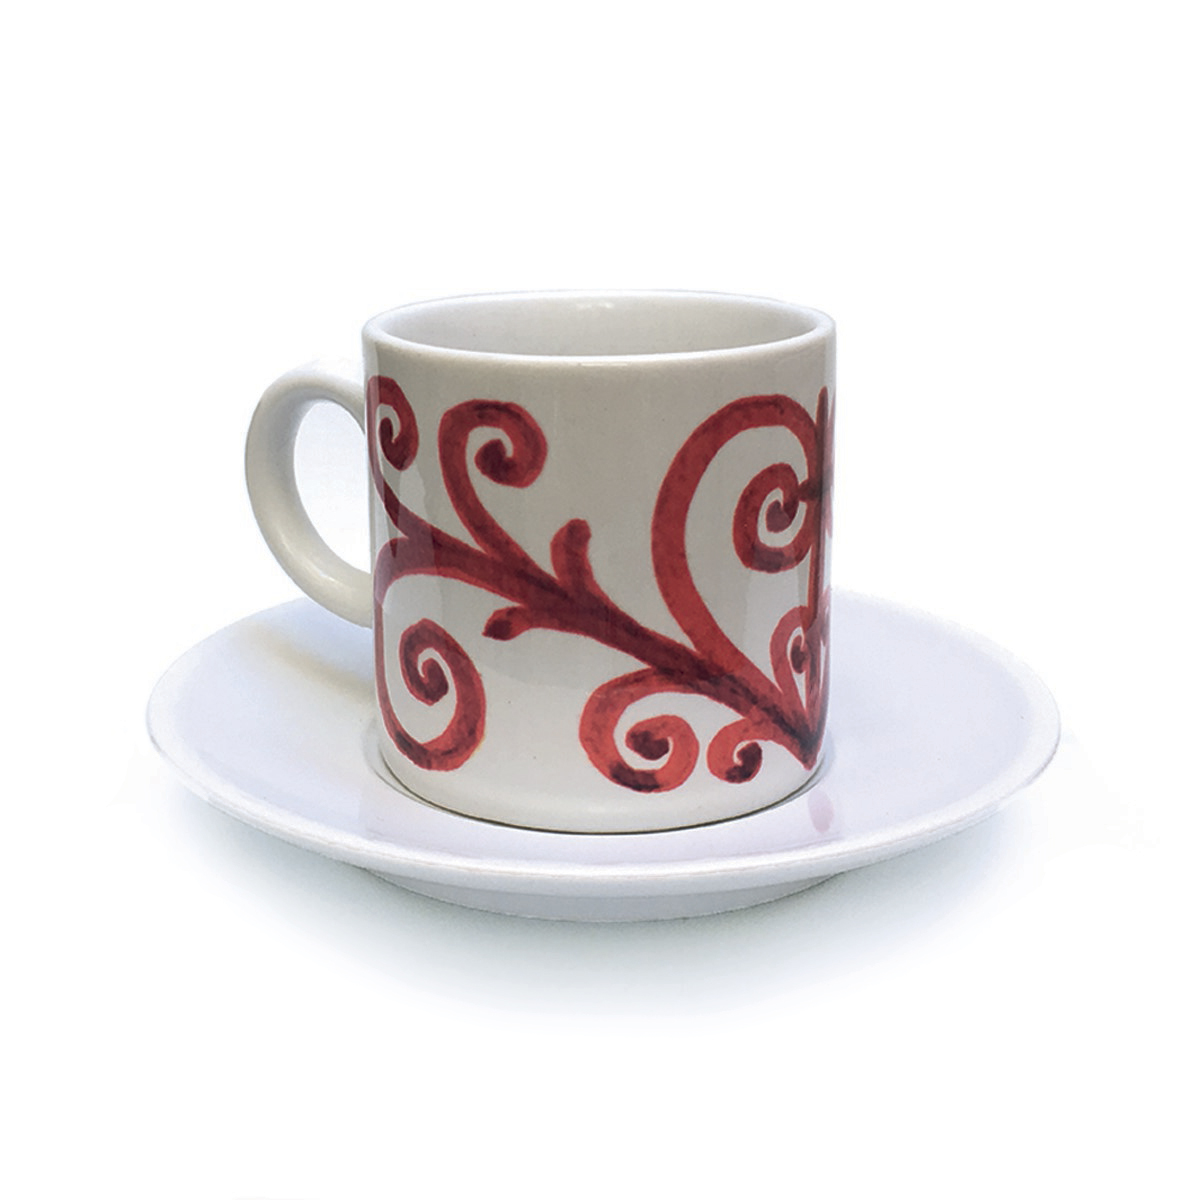 Wrought Iron Red Cup & Saucer Pattern 1